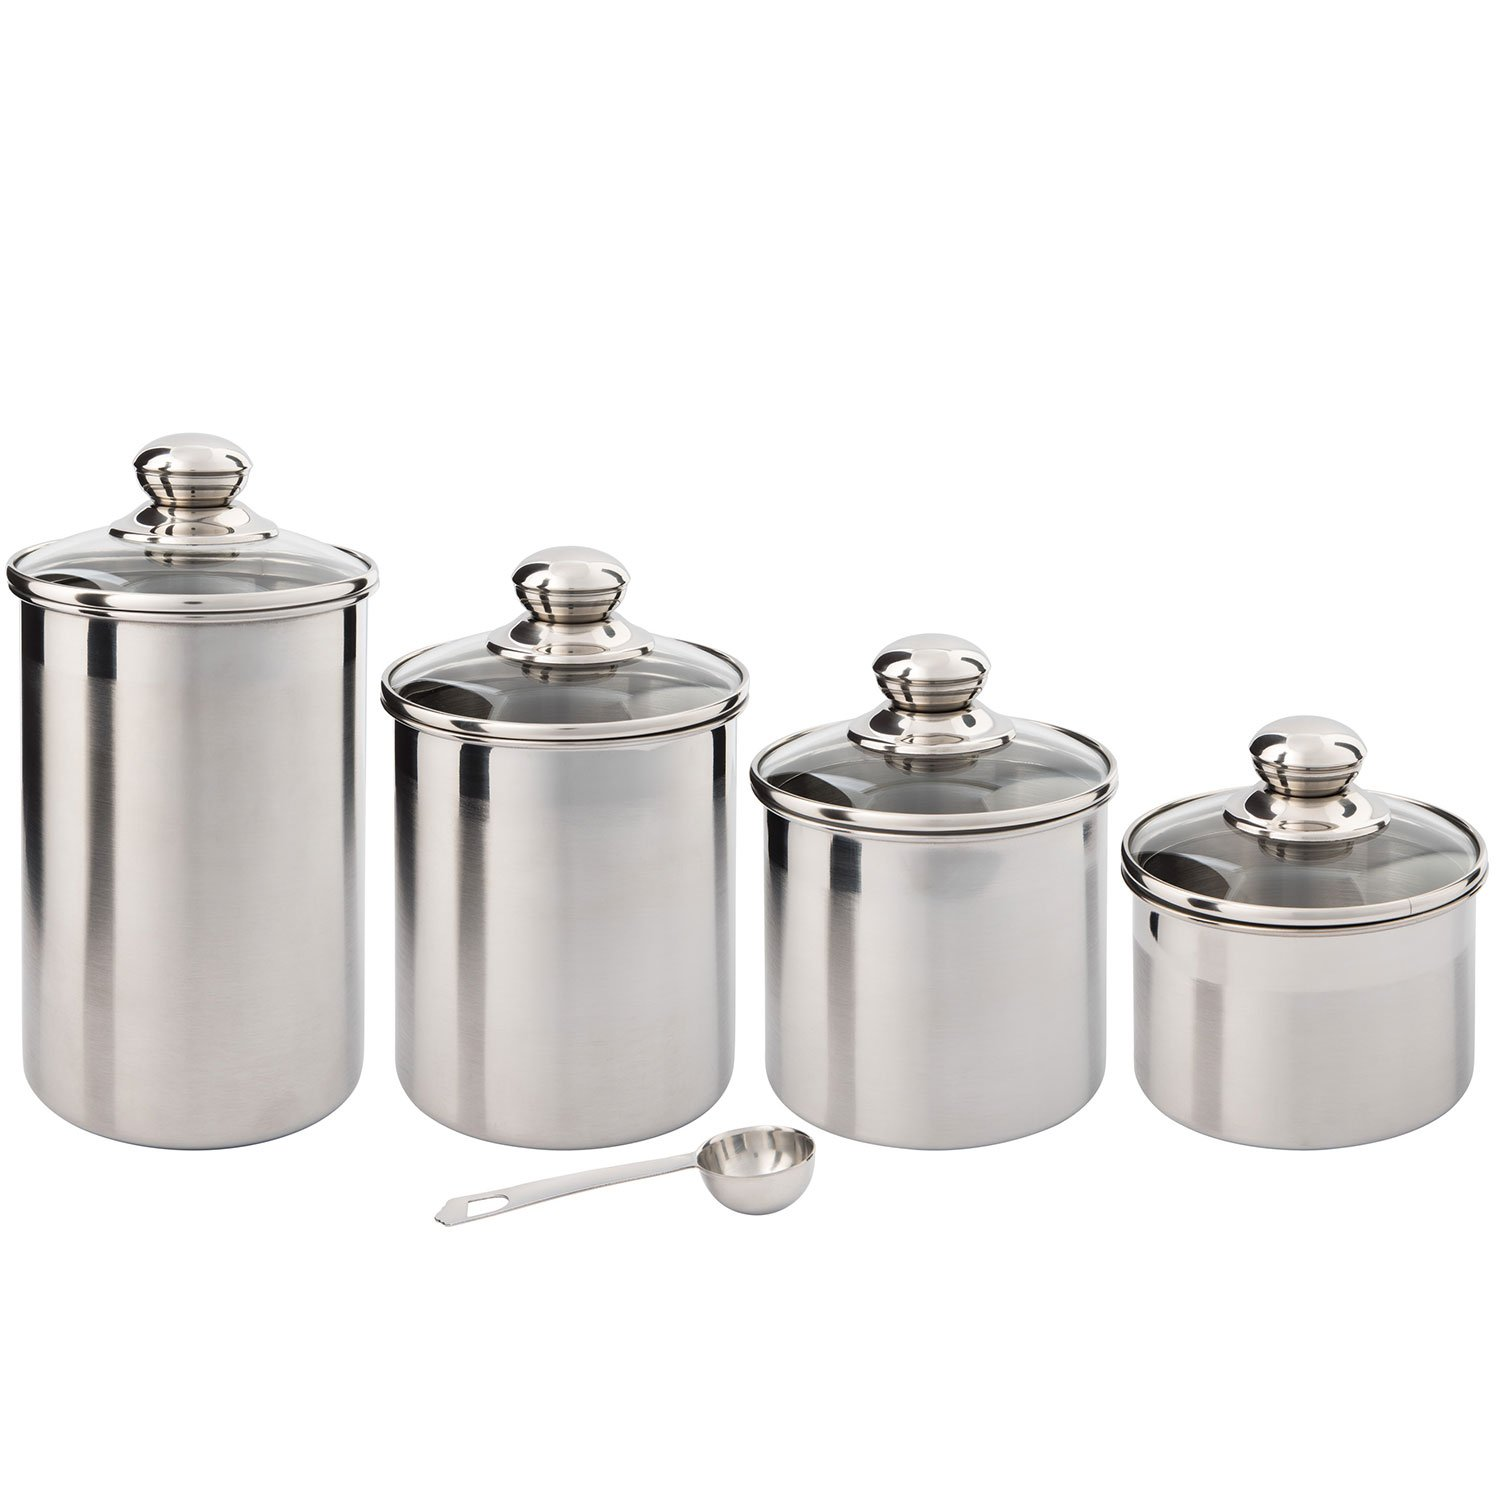 Canister Set Stainless Steel - Beautiful Canisters for Kitchen ...